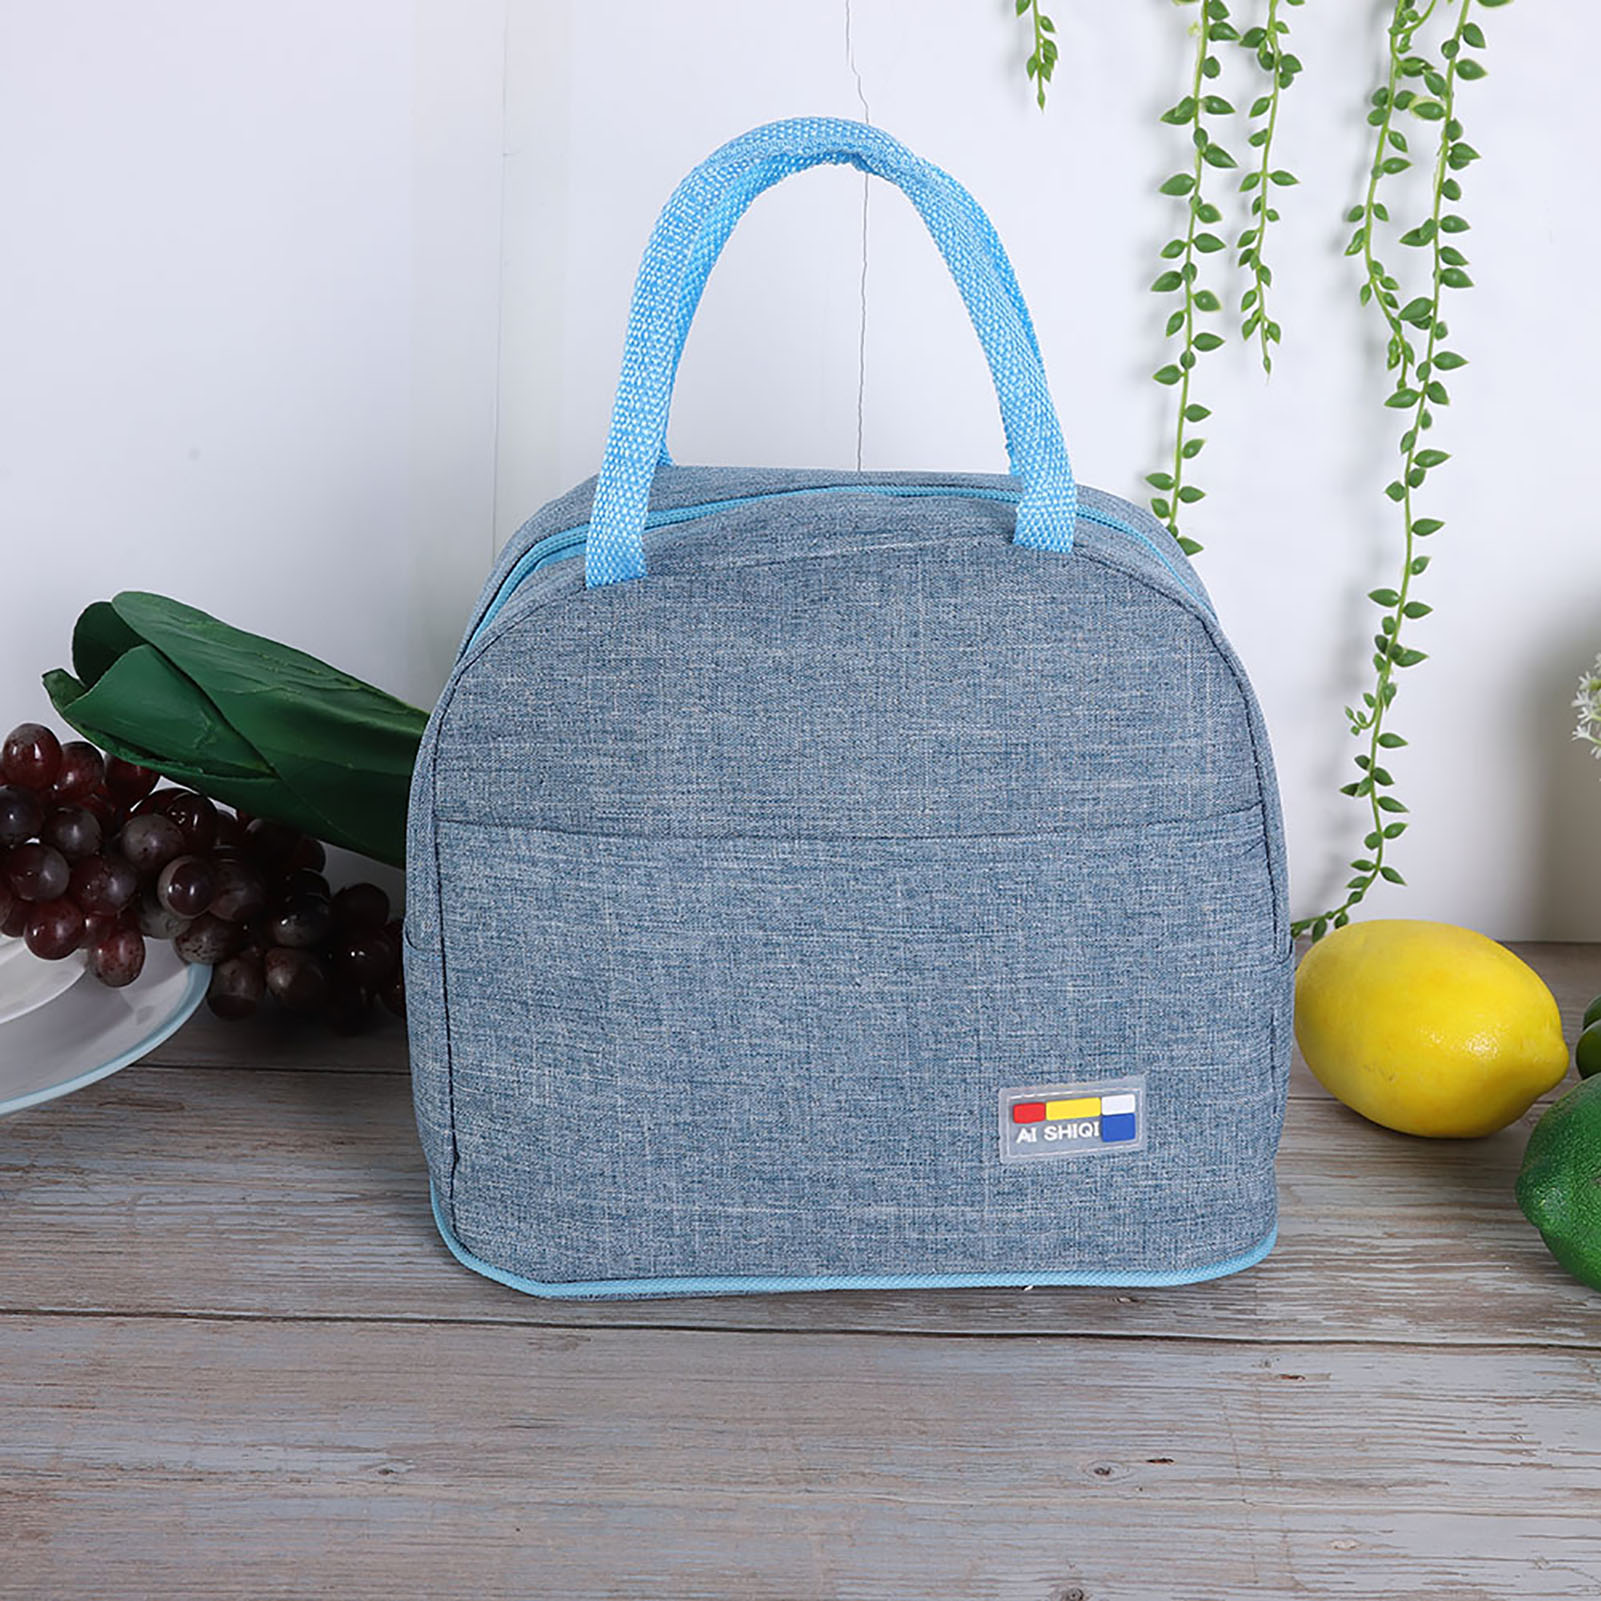 Portable-Lunch-Bag-Insulated-Thermal-Bags-Outdoor-Picnic-Travel-Food-Box-Bag thumbnail 31